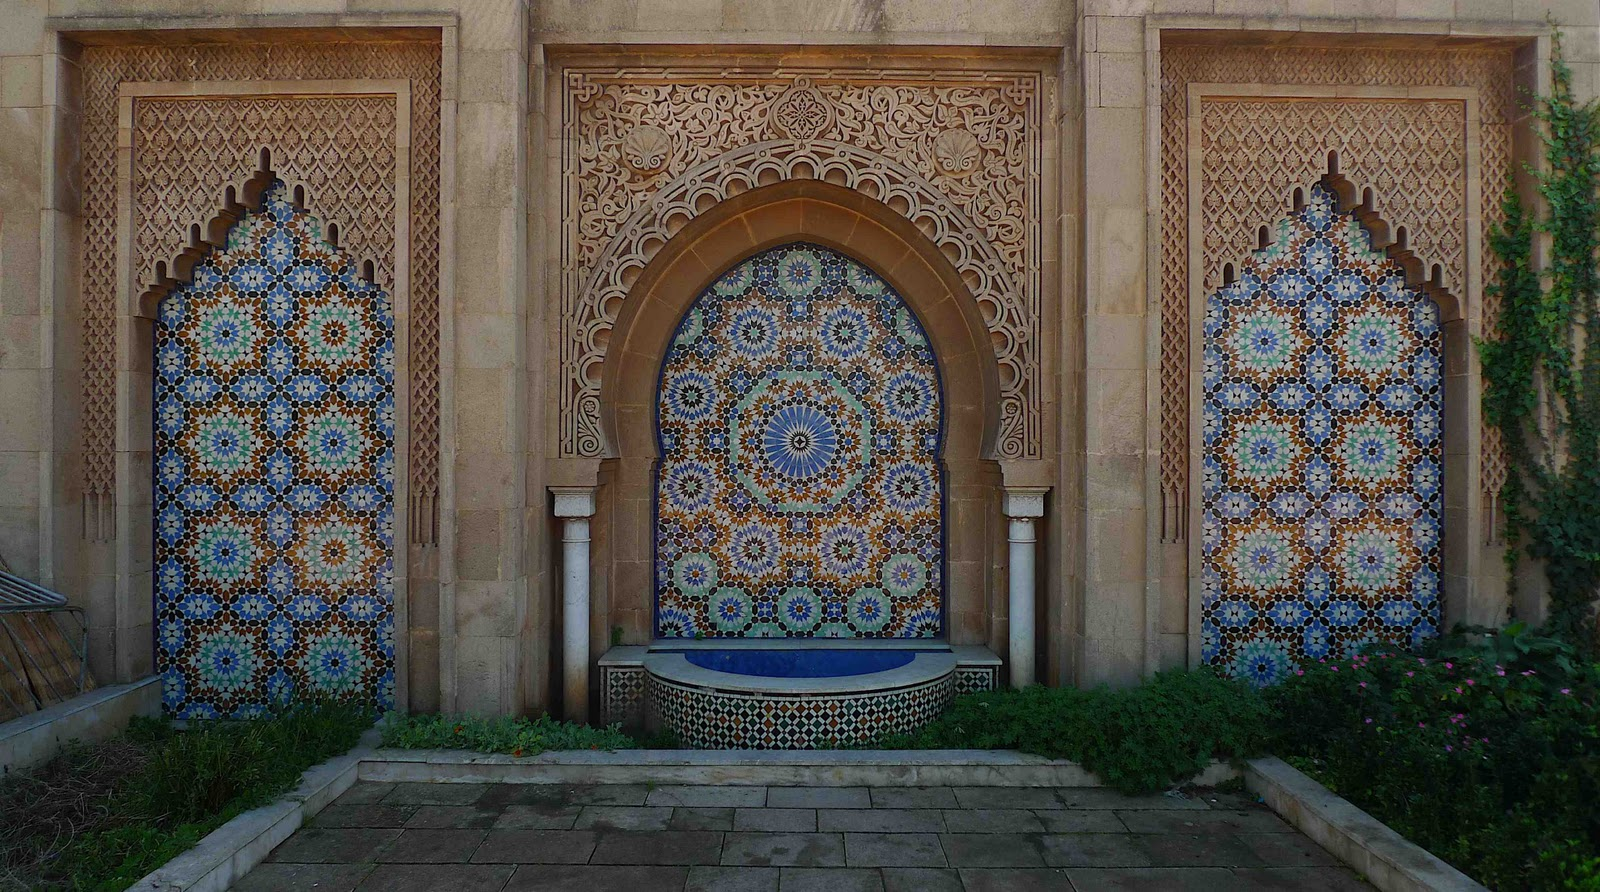 March arts and crafts - The Arts And Crafts Of Morocco